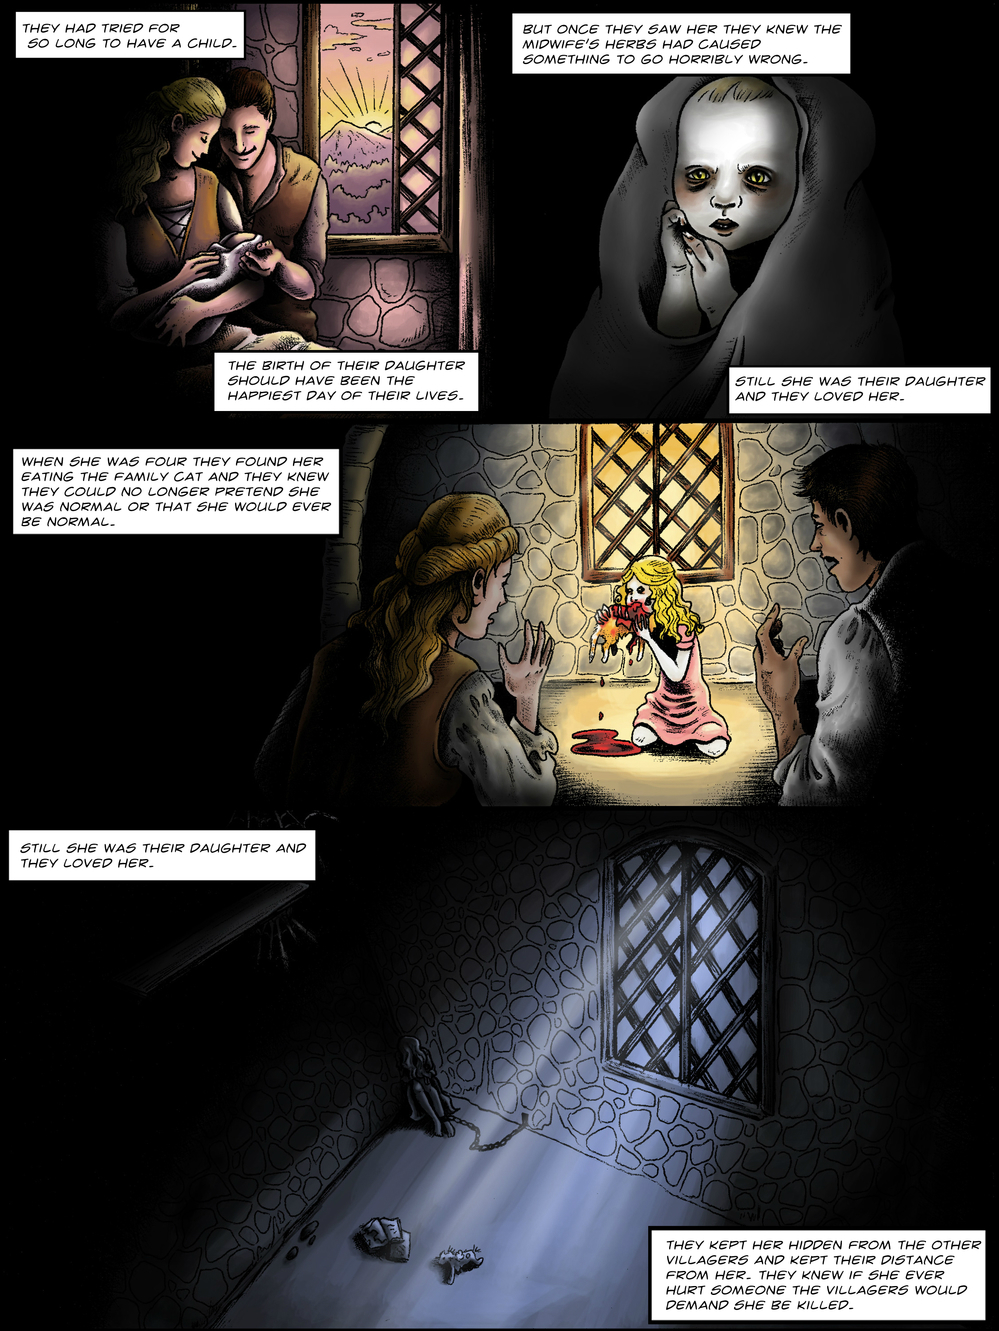 THE TOWER page 1 - story 1 in The Book of Lies